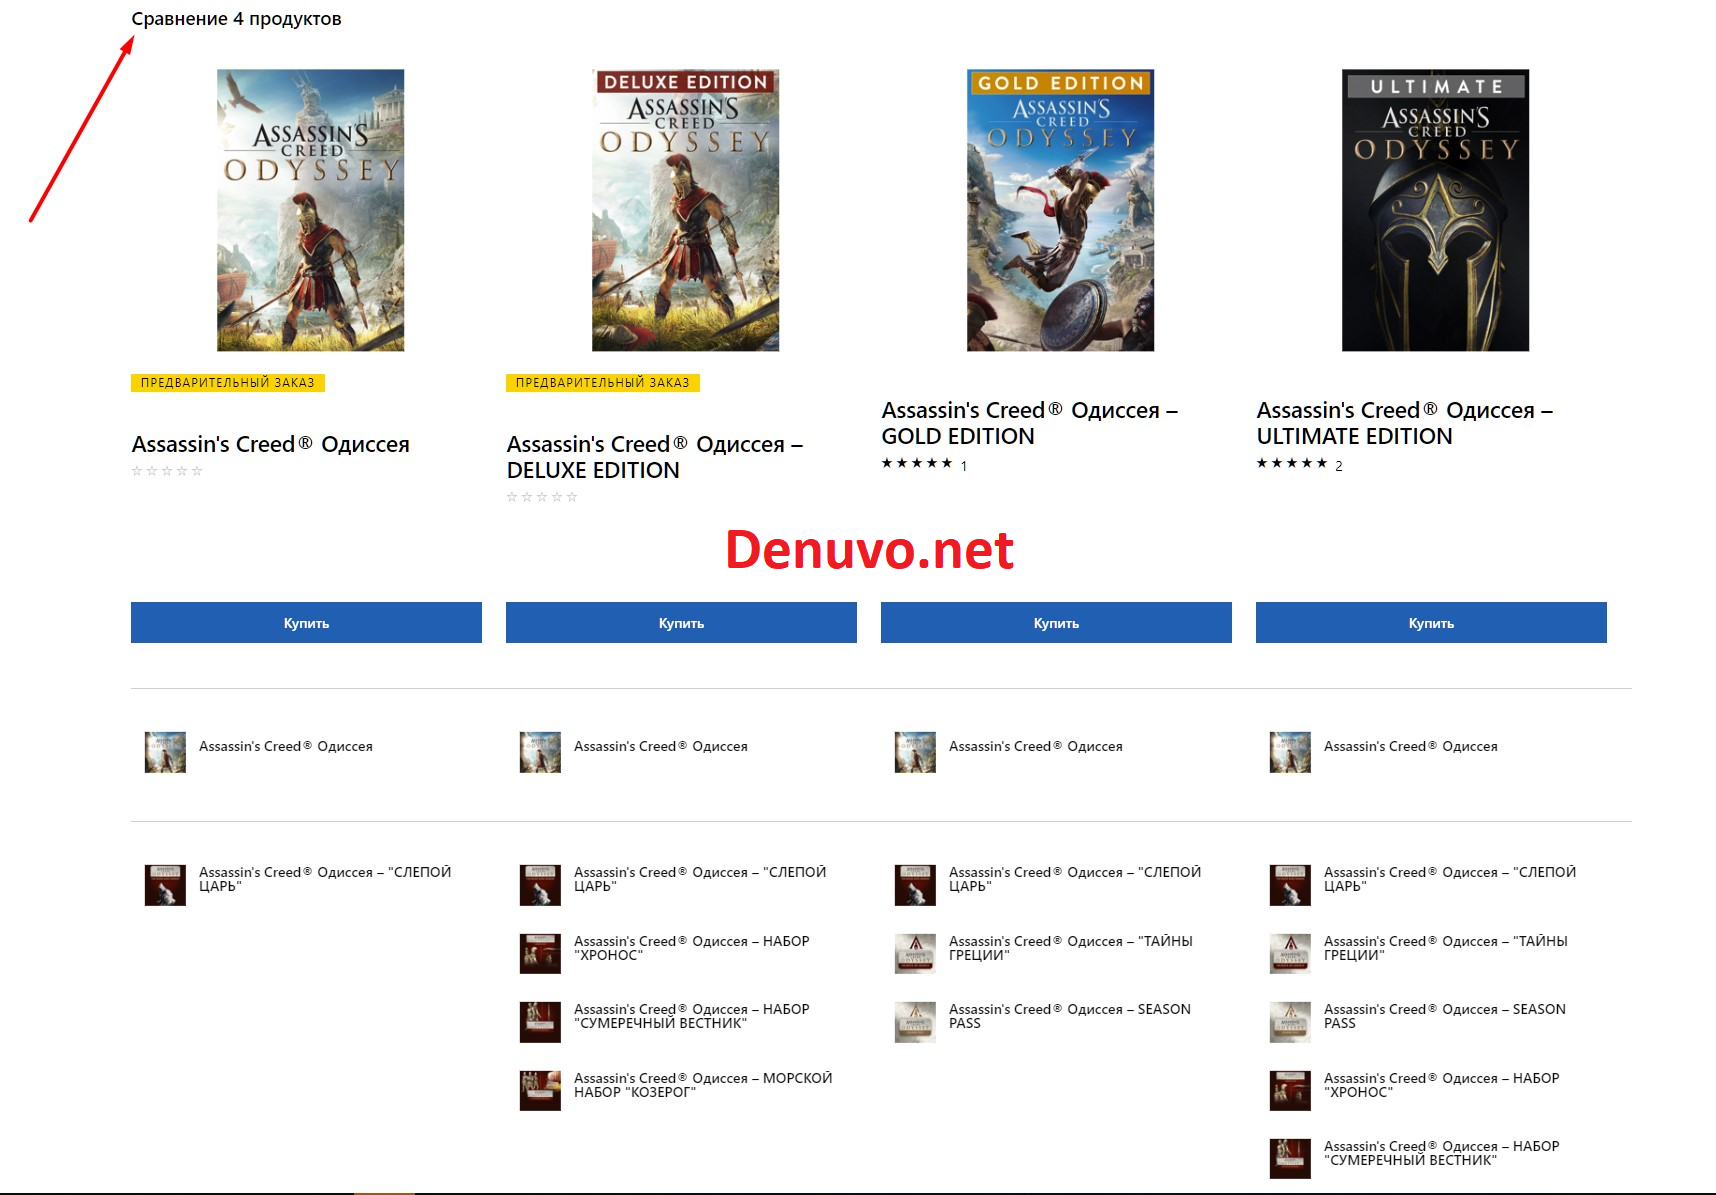 Assassin´s Creed Odyssey ULTIMATE (V1.10)+ВСЕ DLC